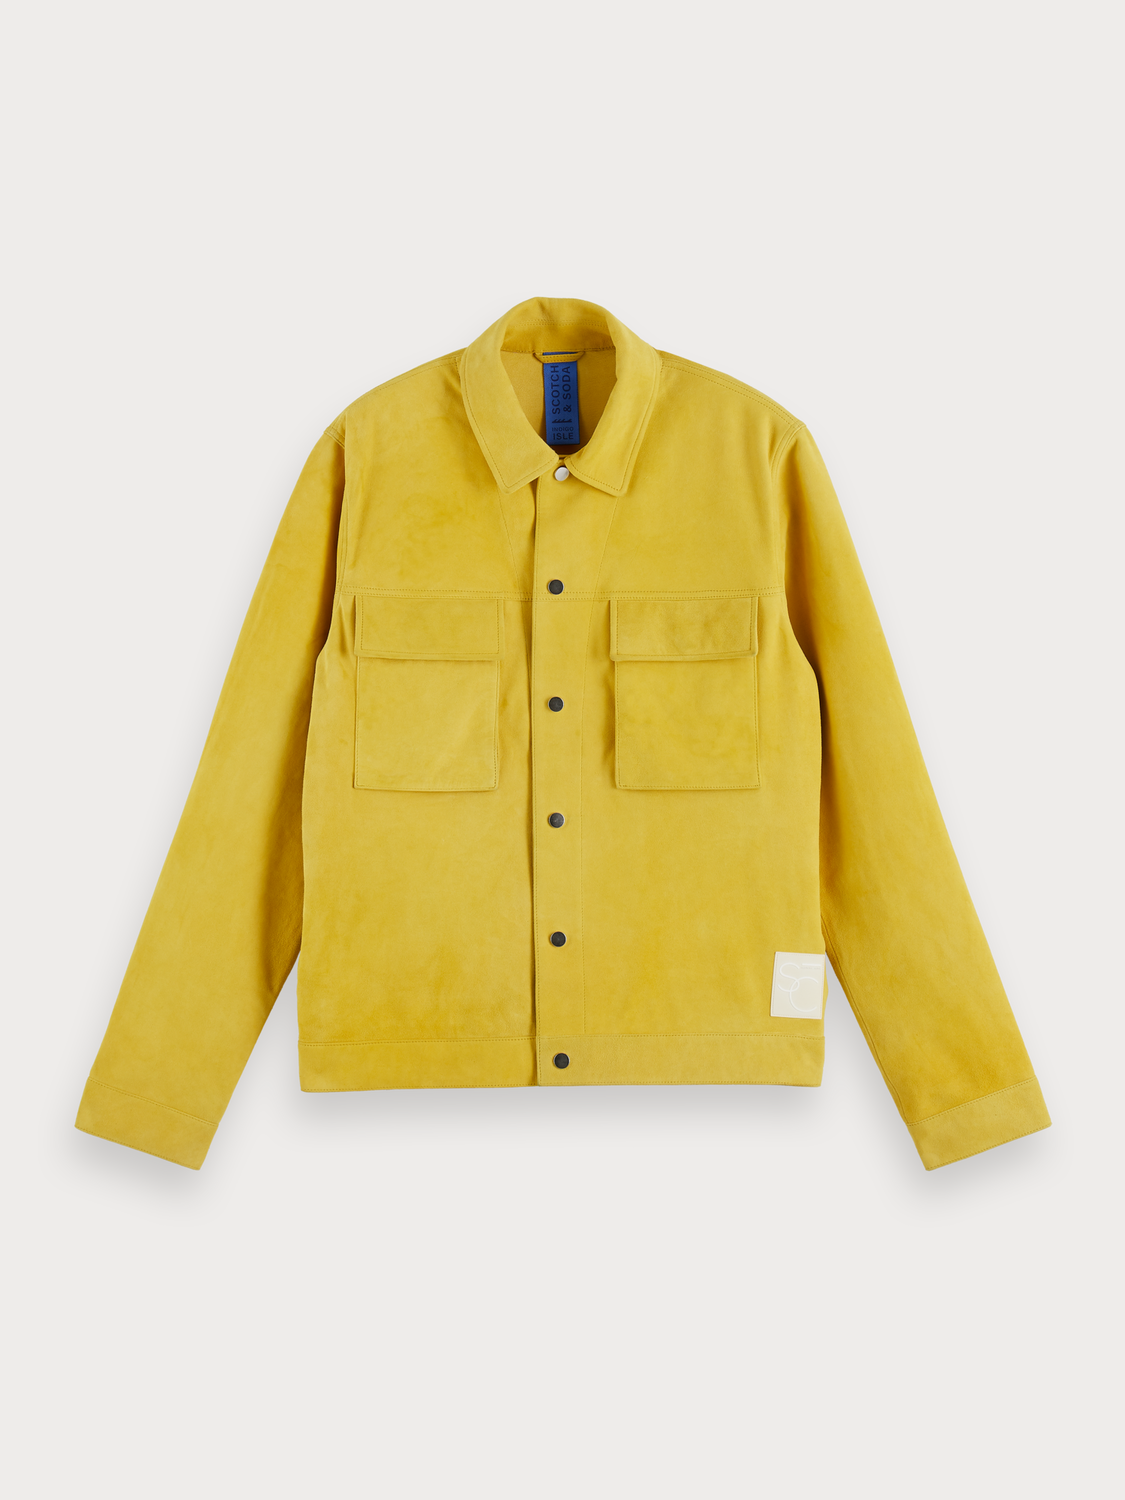 Uomo 100% soft suede workwear jacket